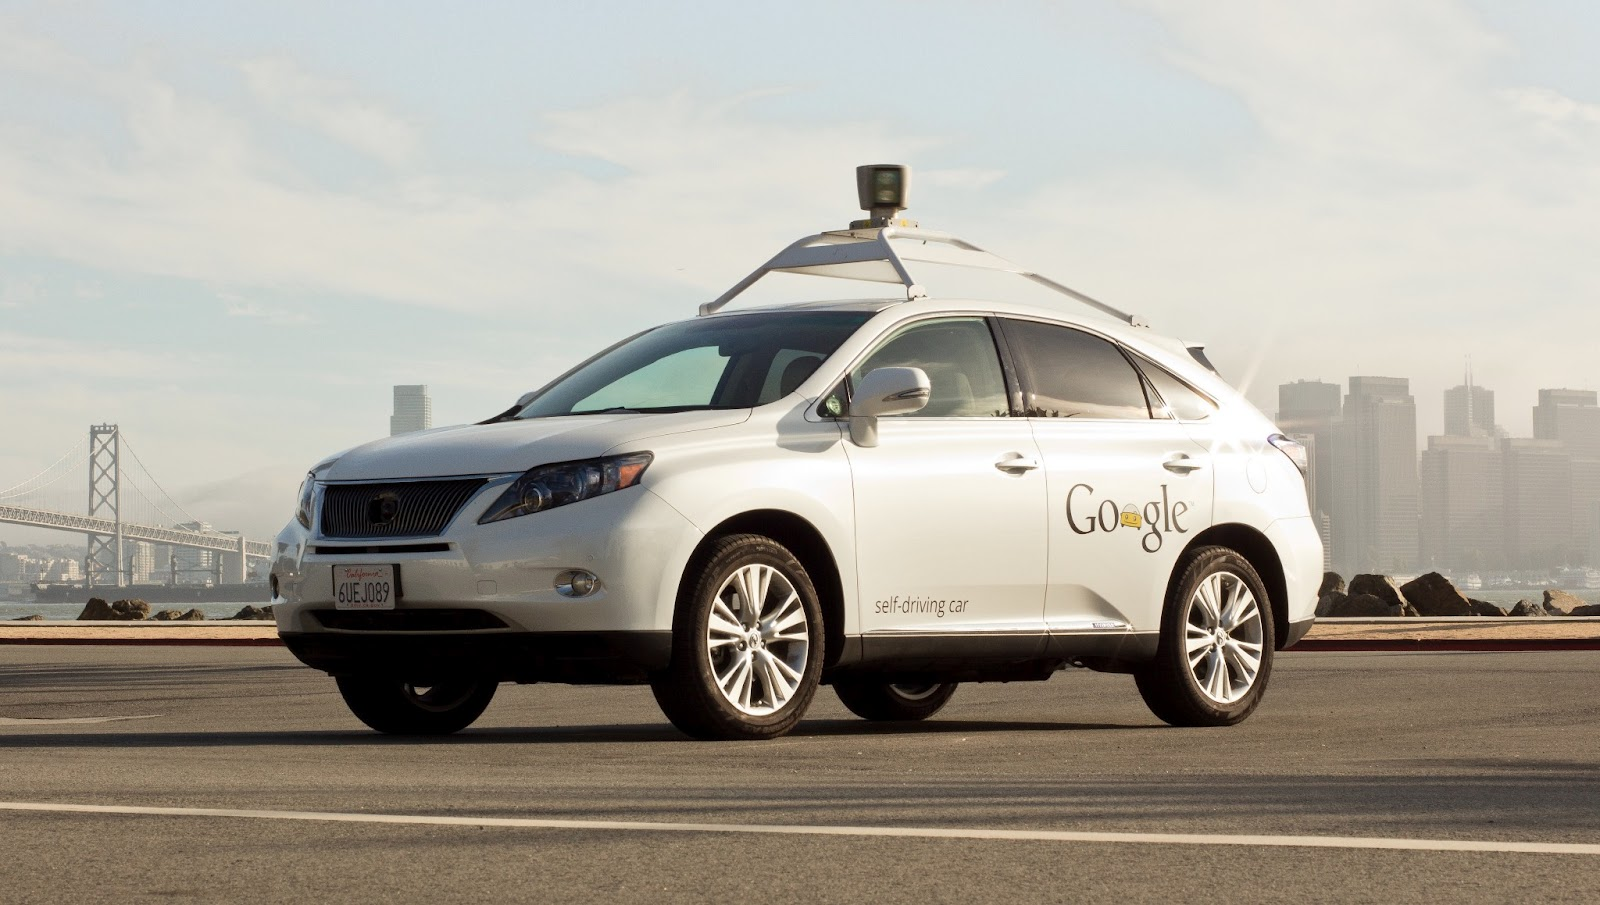 Google's self-driving Lexus RX450h SUVs is now testing in Austin, and another will arrive later this week.